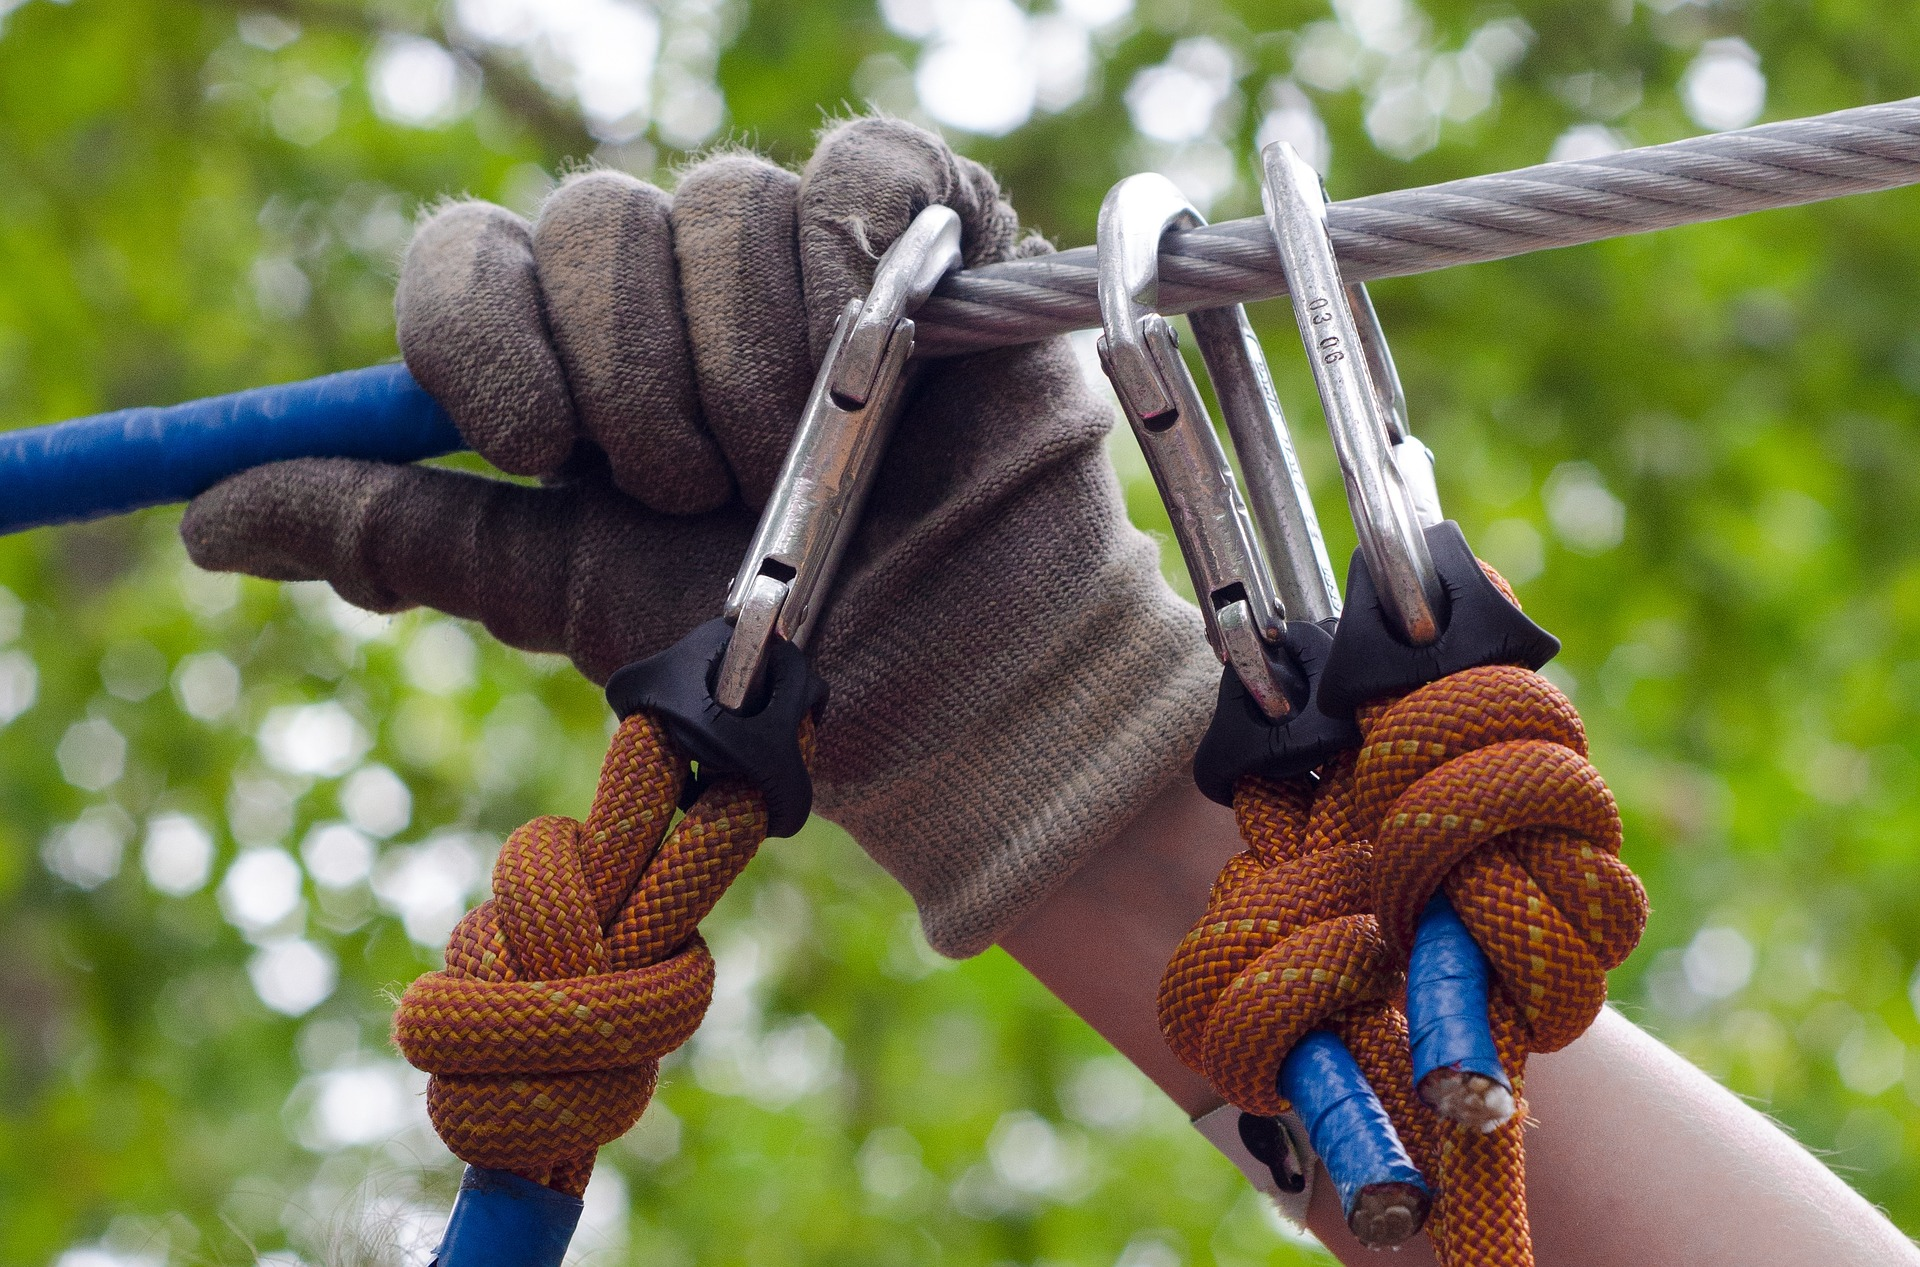 Climbing gear hand httpspixabay.comenclimb-adventure-hand-gloves-rail-1044713.jpg